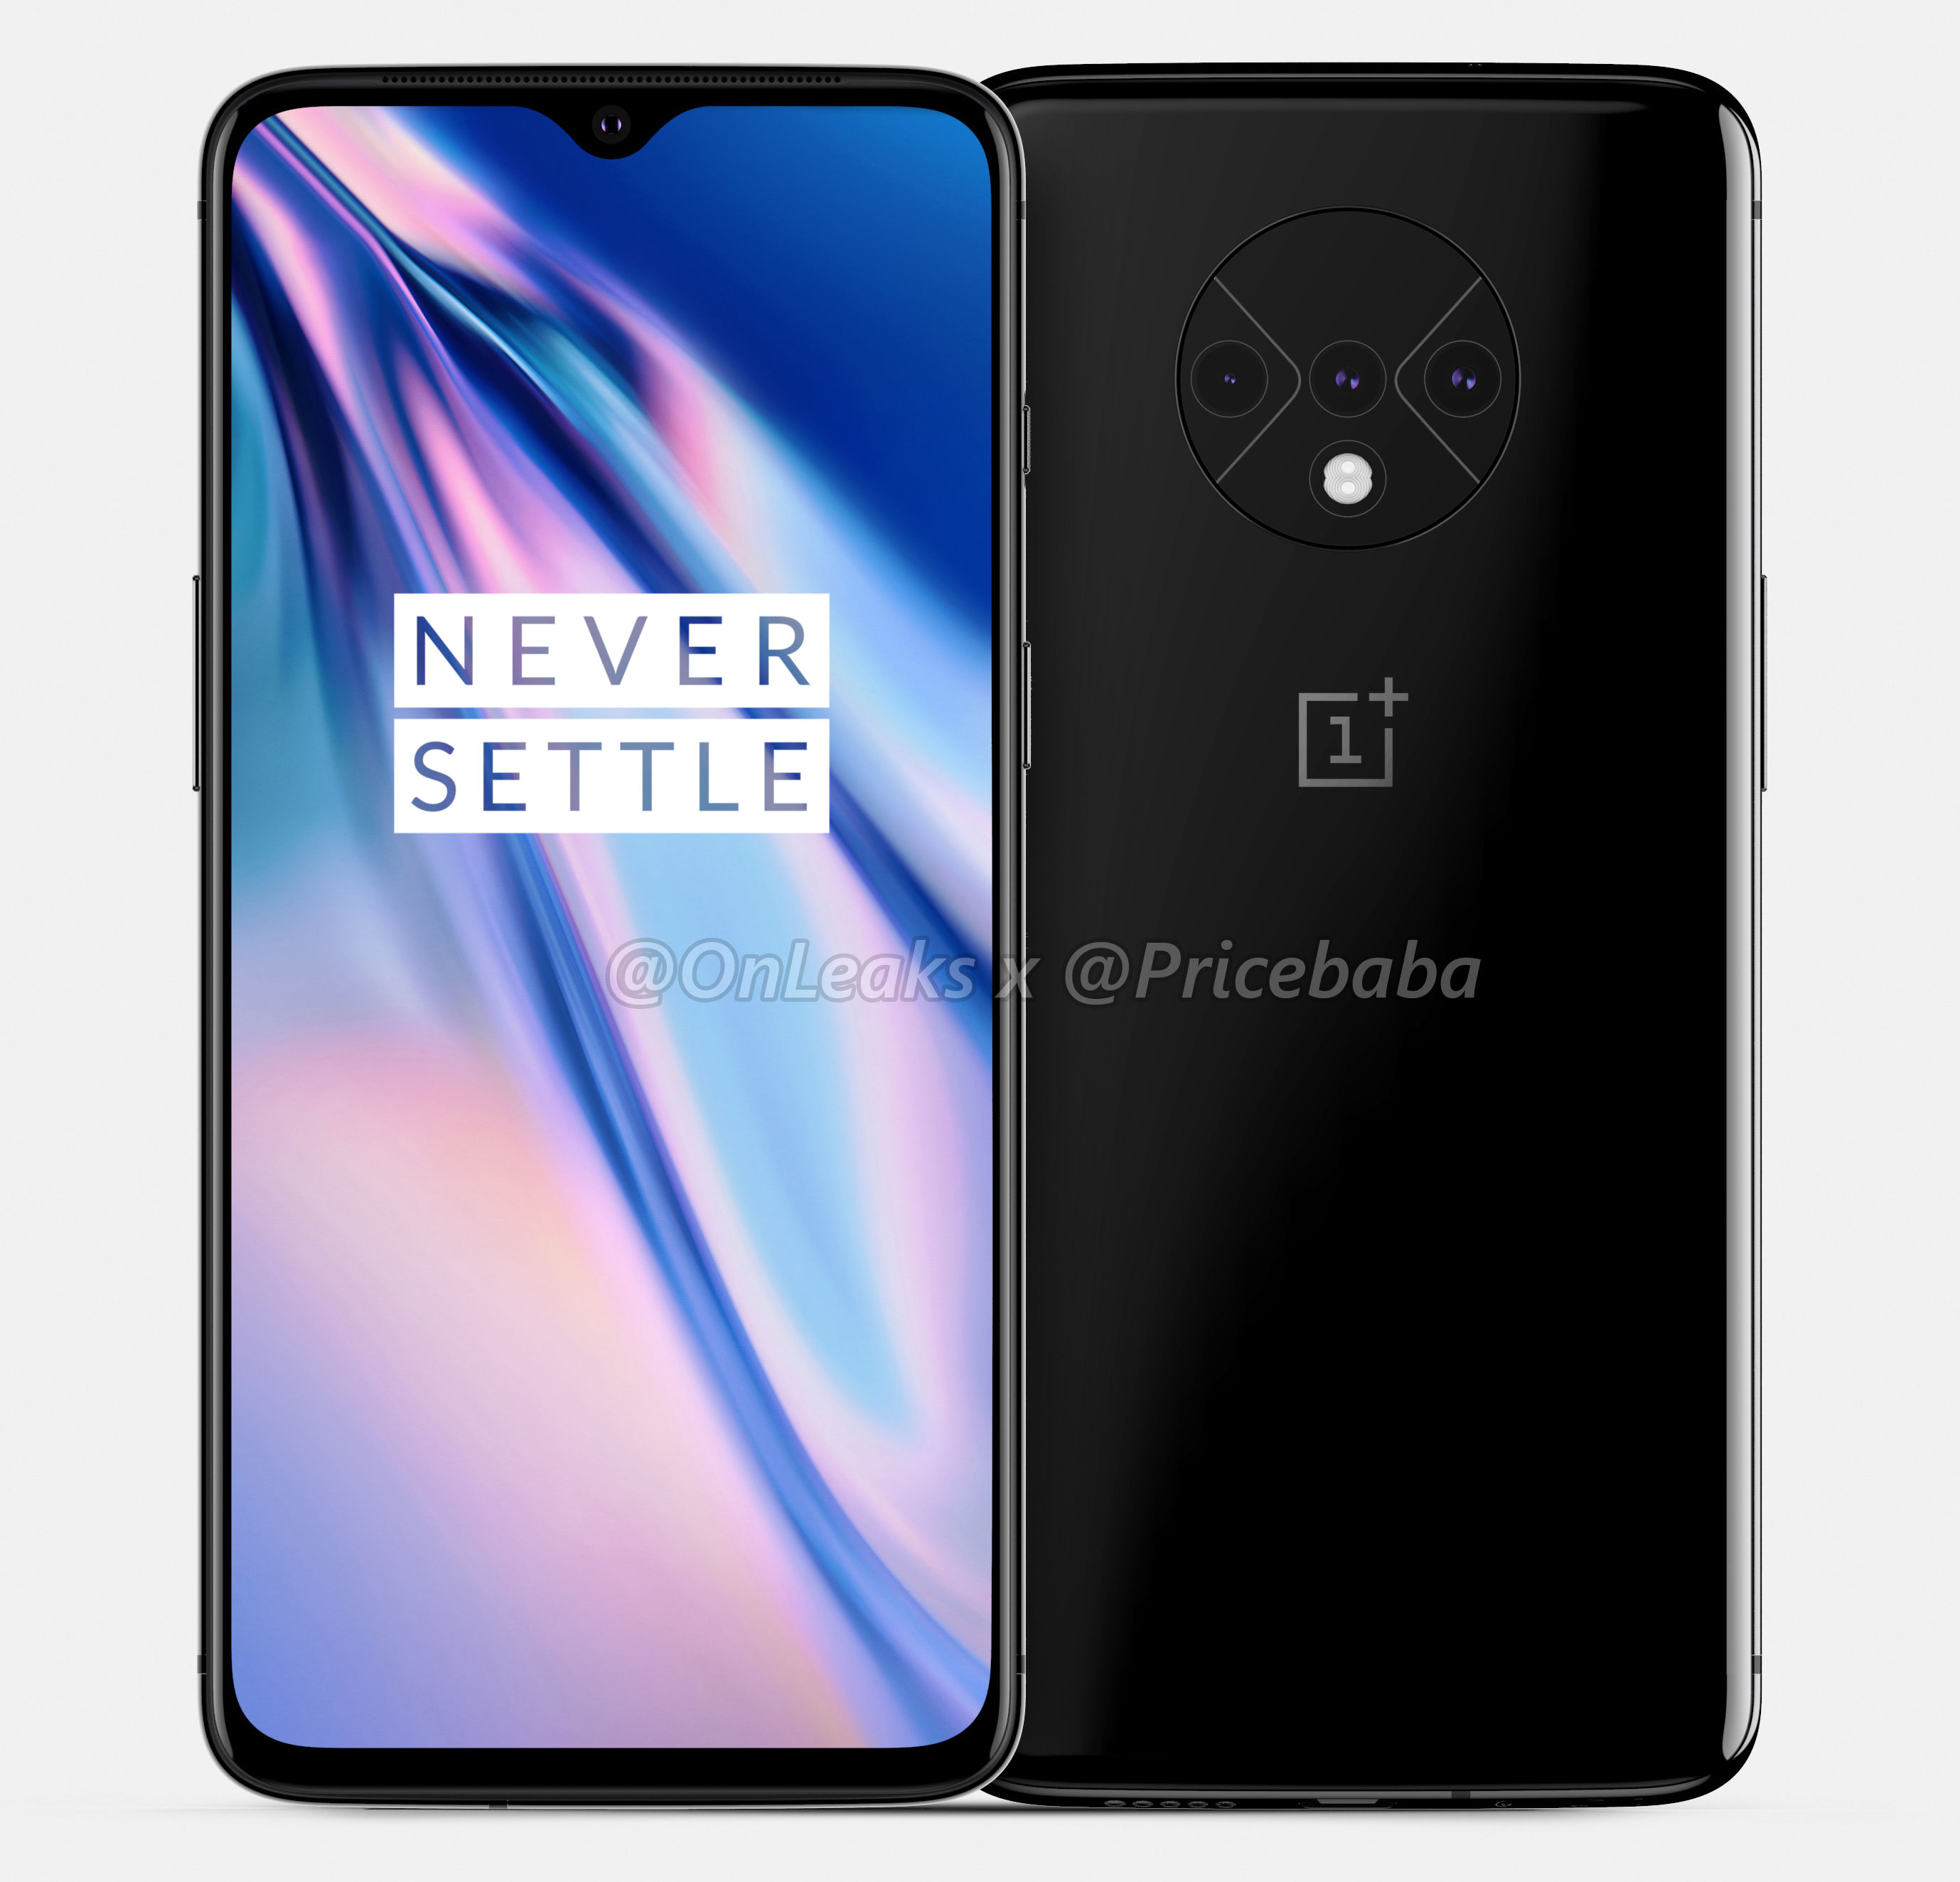 🥇 ▷ The 90 Hz display of the OnePlus 7 Pro will also